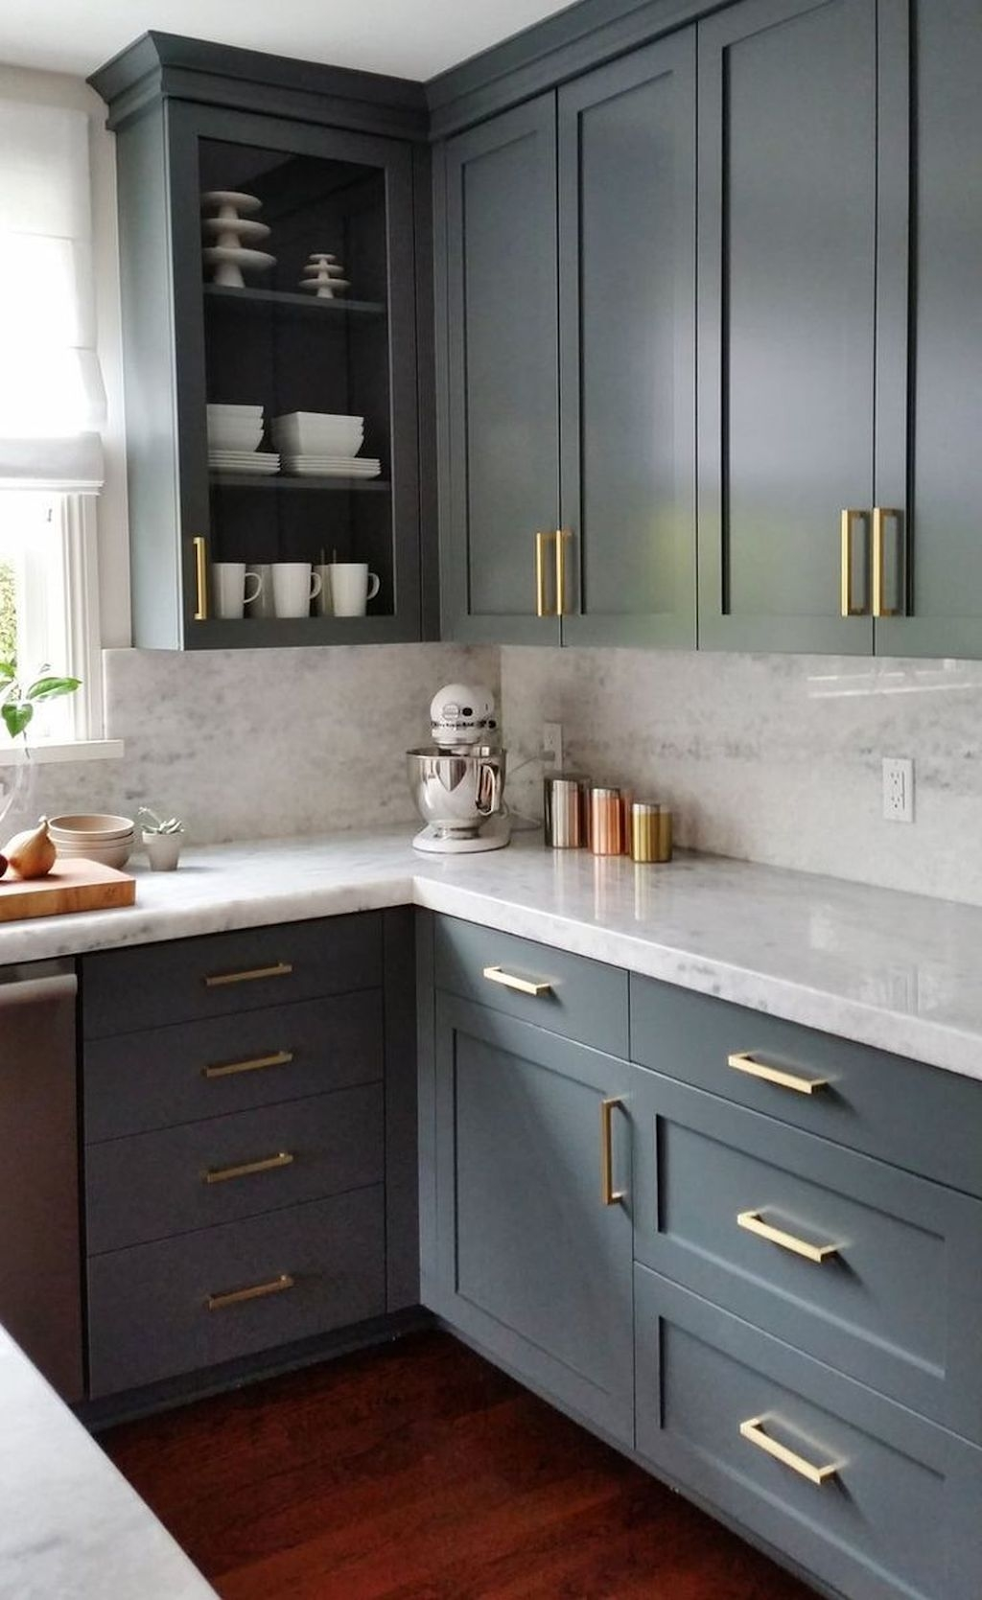 25+ Beautiful Gray Kitchen Photos for Major Inspiration